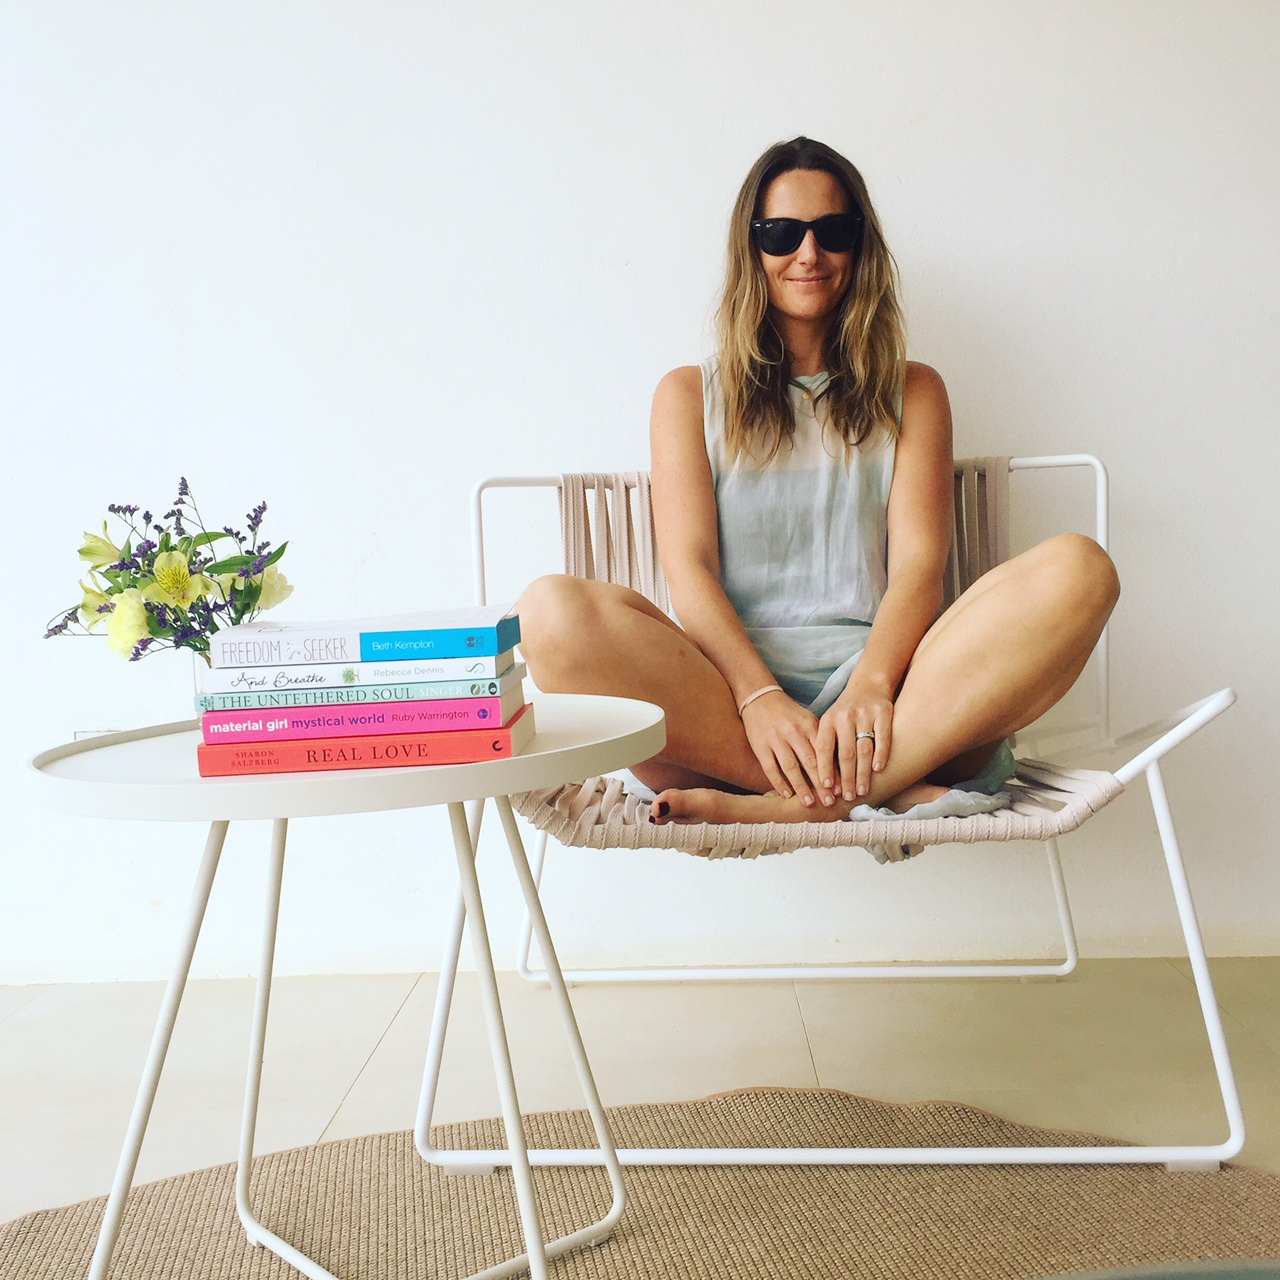 Shelf Help on tour: This week my books and I have been in Ibiza on a wellness retreat